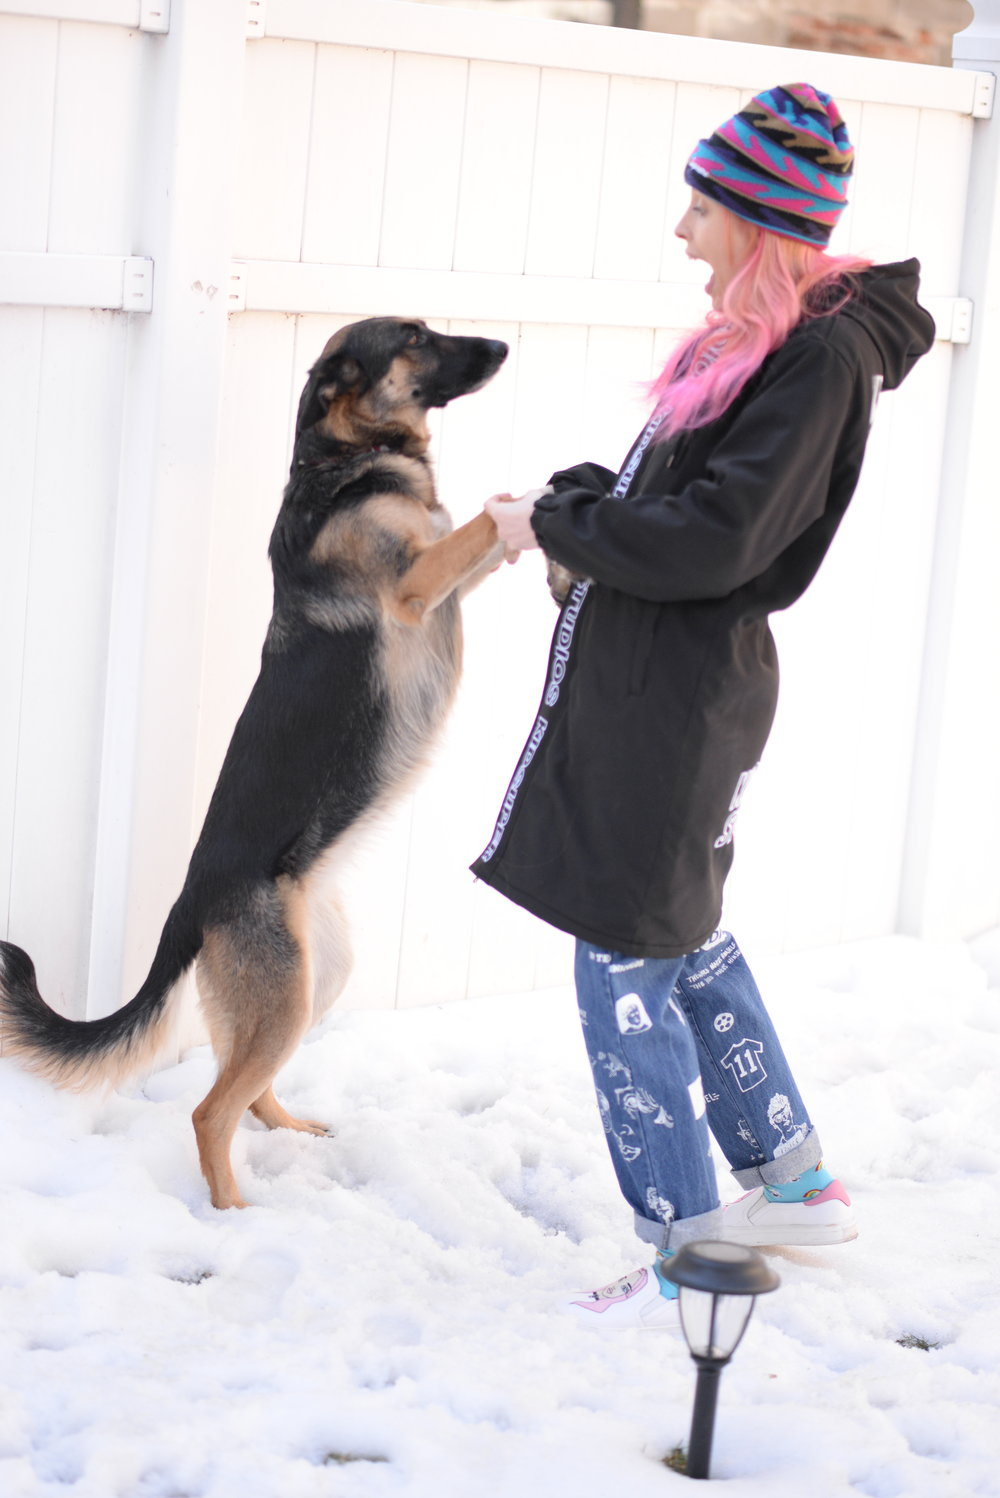 2PM - Playing with my baby Luna in the snow, we are great dancers!